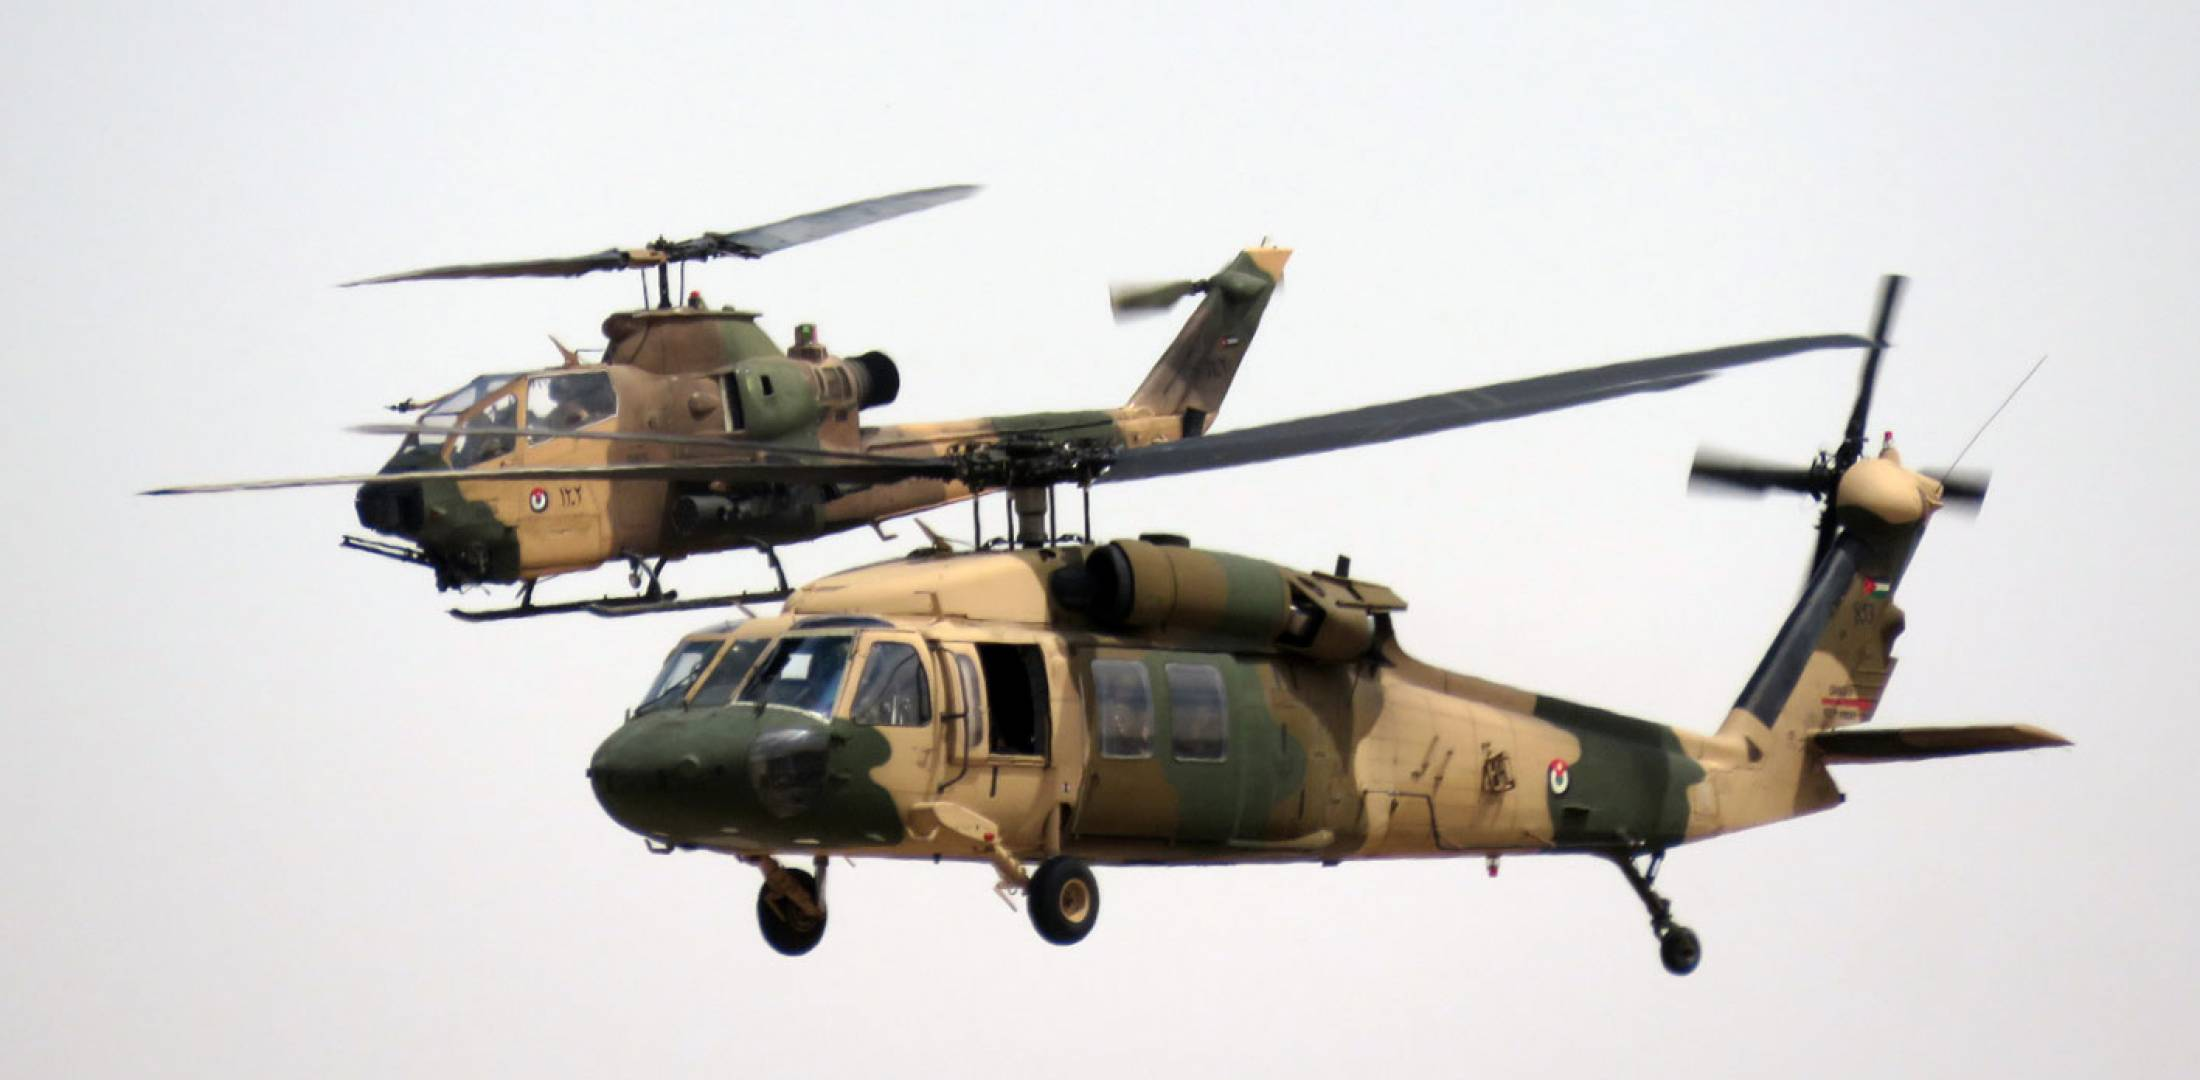 UH-60A and AH-1F in flight